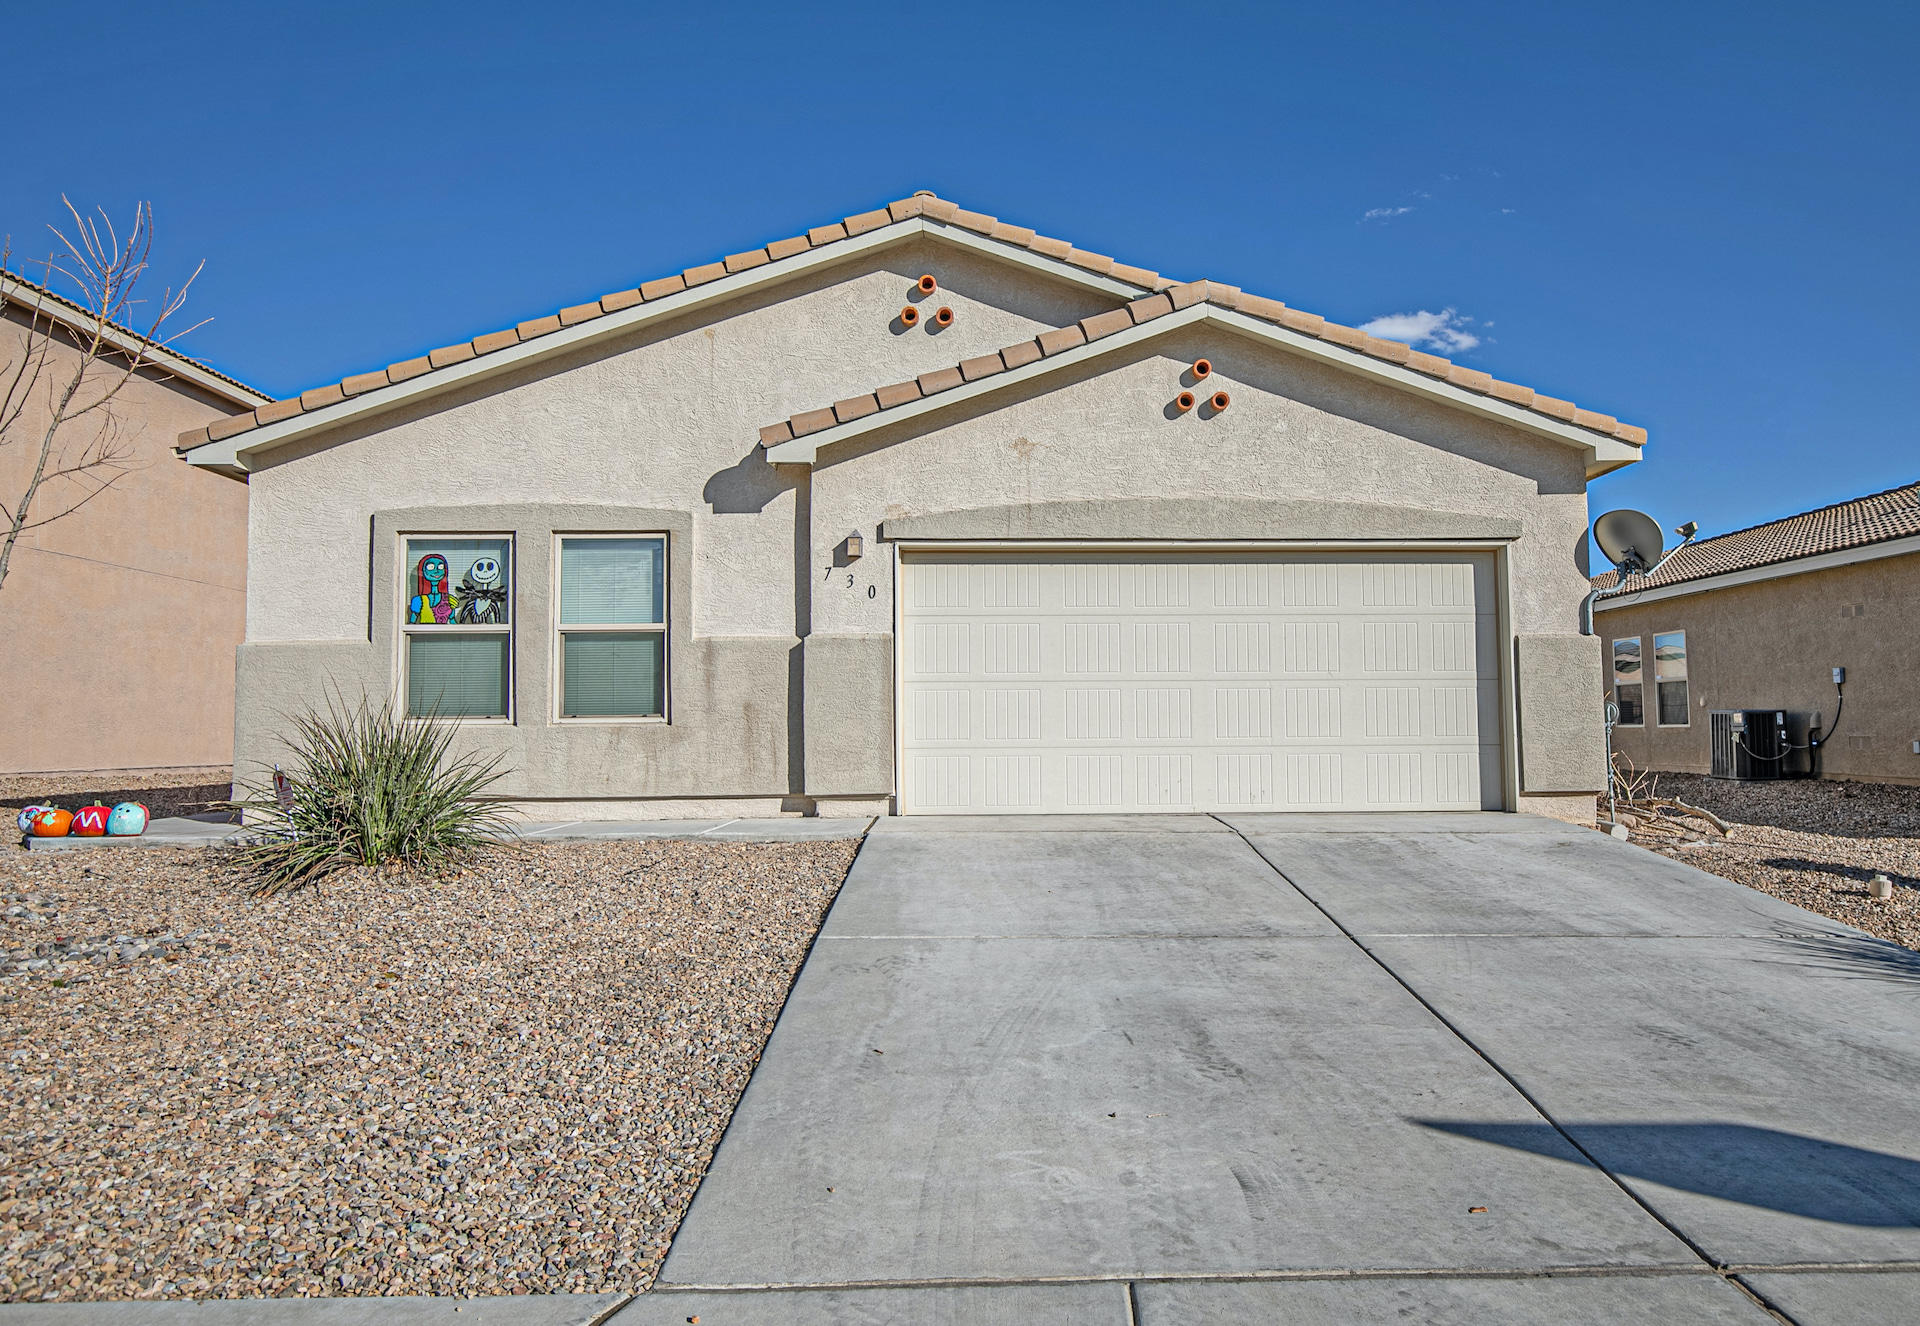 Don't miss out on an opportunity to own this beautiful home in the highly sought after Hunning Ranch Subdivision.  With its open floor plan and vaulted ceilings this home will wow you the moment you walk in!  With a possible 4th bedroom and spacious living area it will not last!  Schedule your showing today!